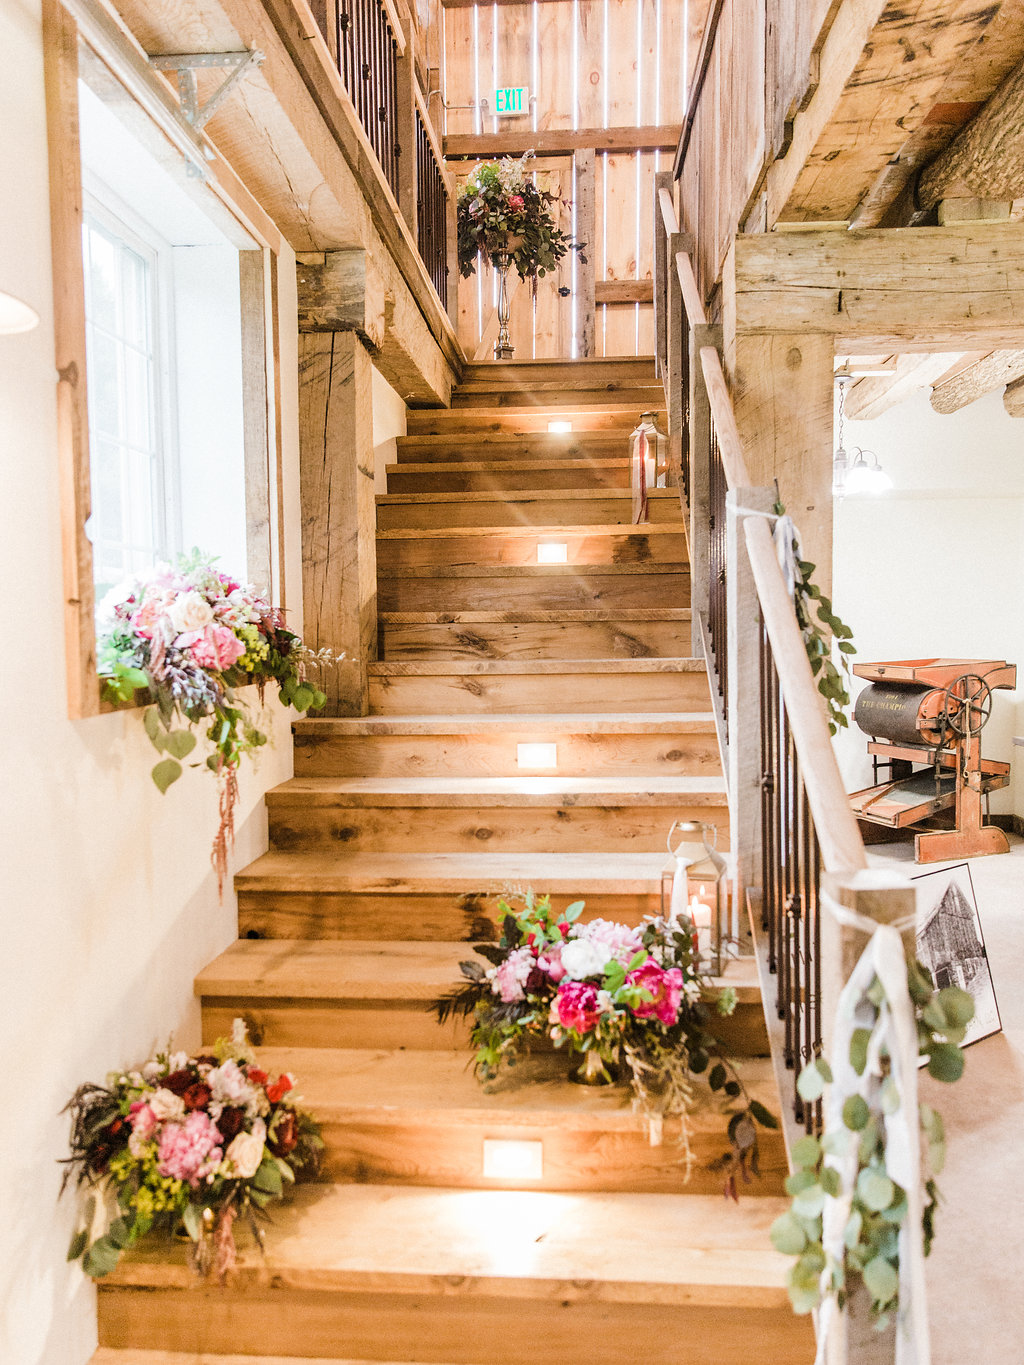 Staircase inside the barn